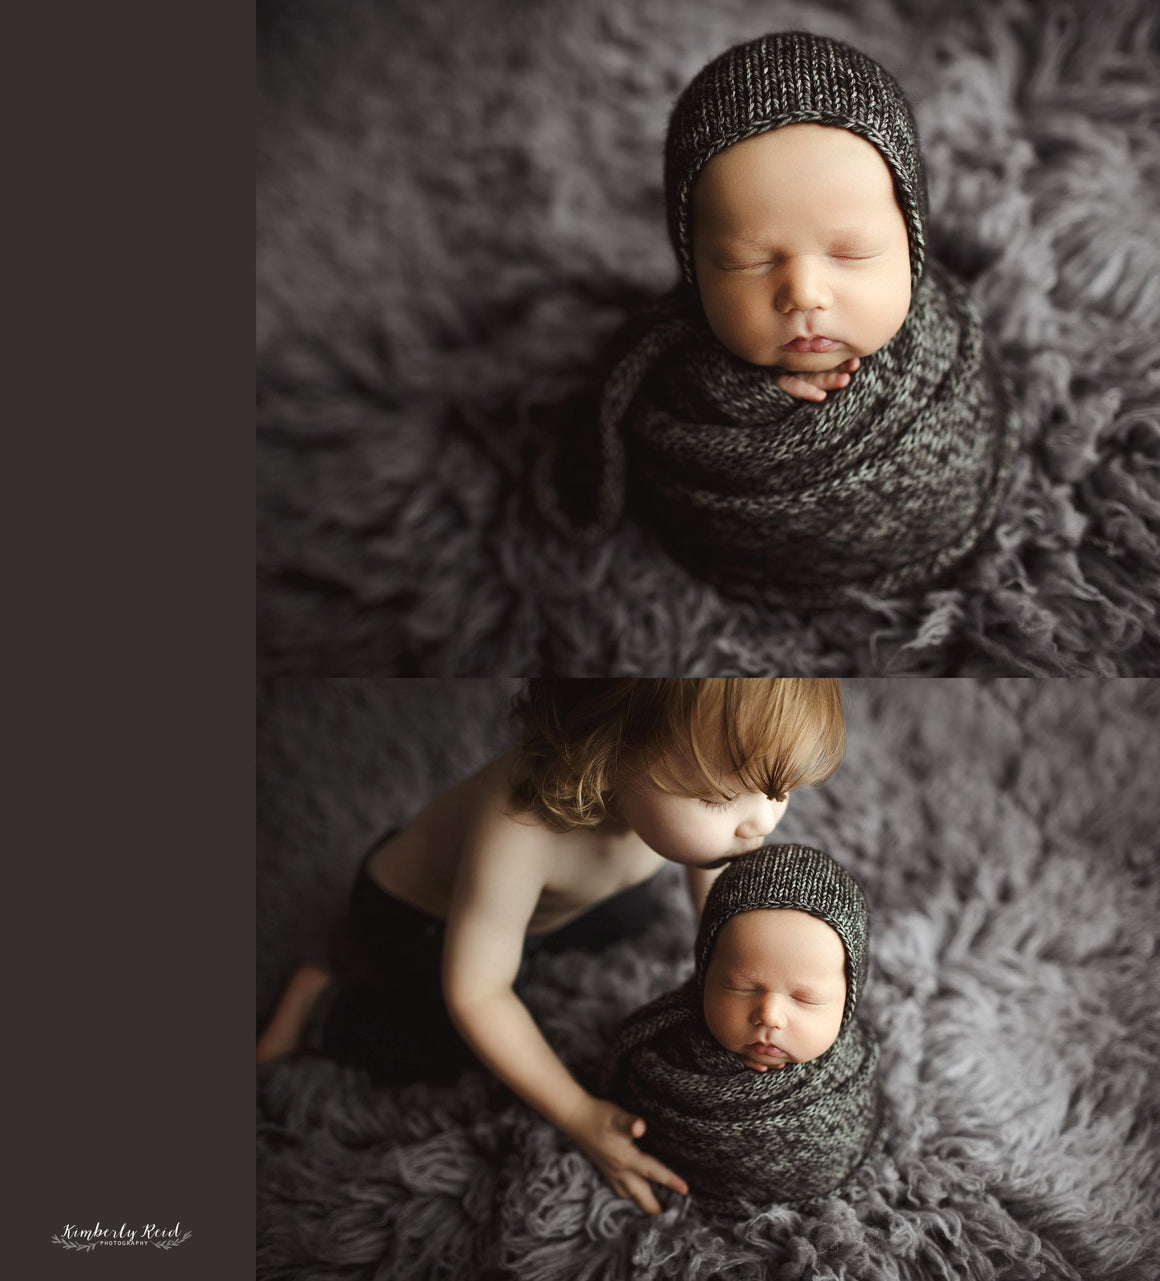 Classic Knit Newborn Bonnet and Wrap Sets - Photography Props - Knit Photography Props by Double the Stitches